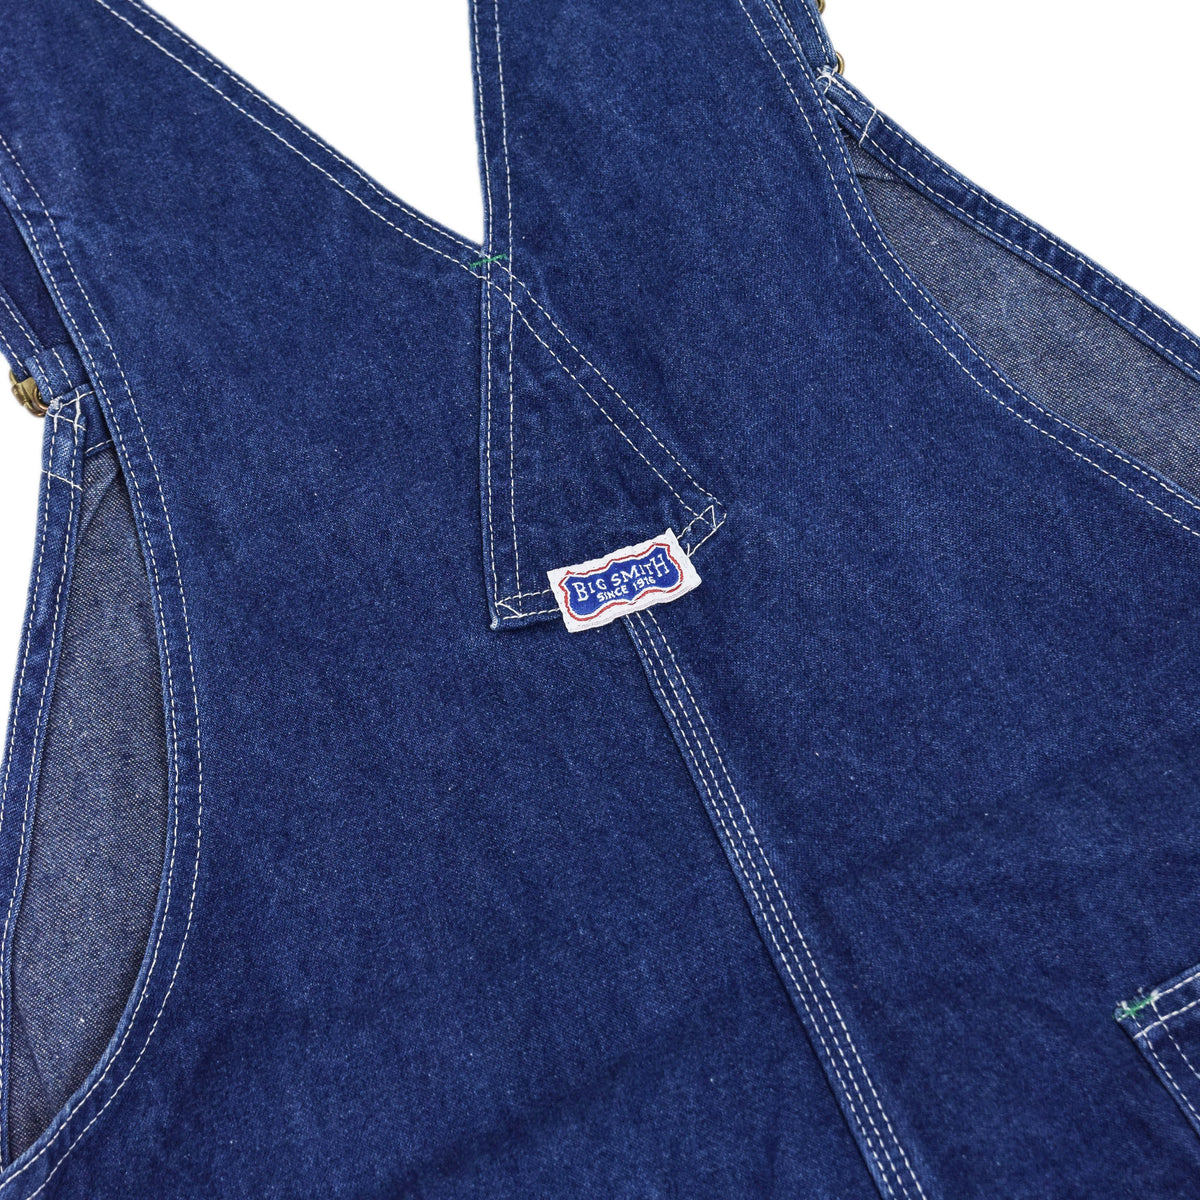 Vintage Big Smith Denim Work Dungarees Blue Bib Overalls Trousers M BSCK DETAIL